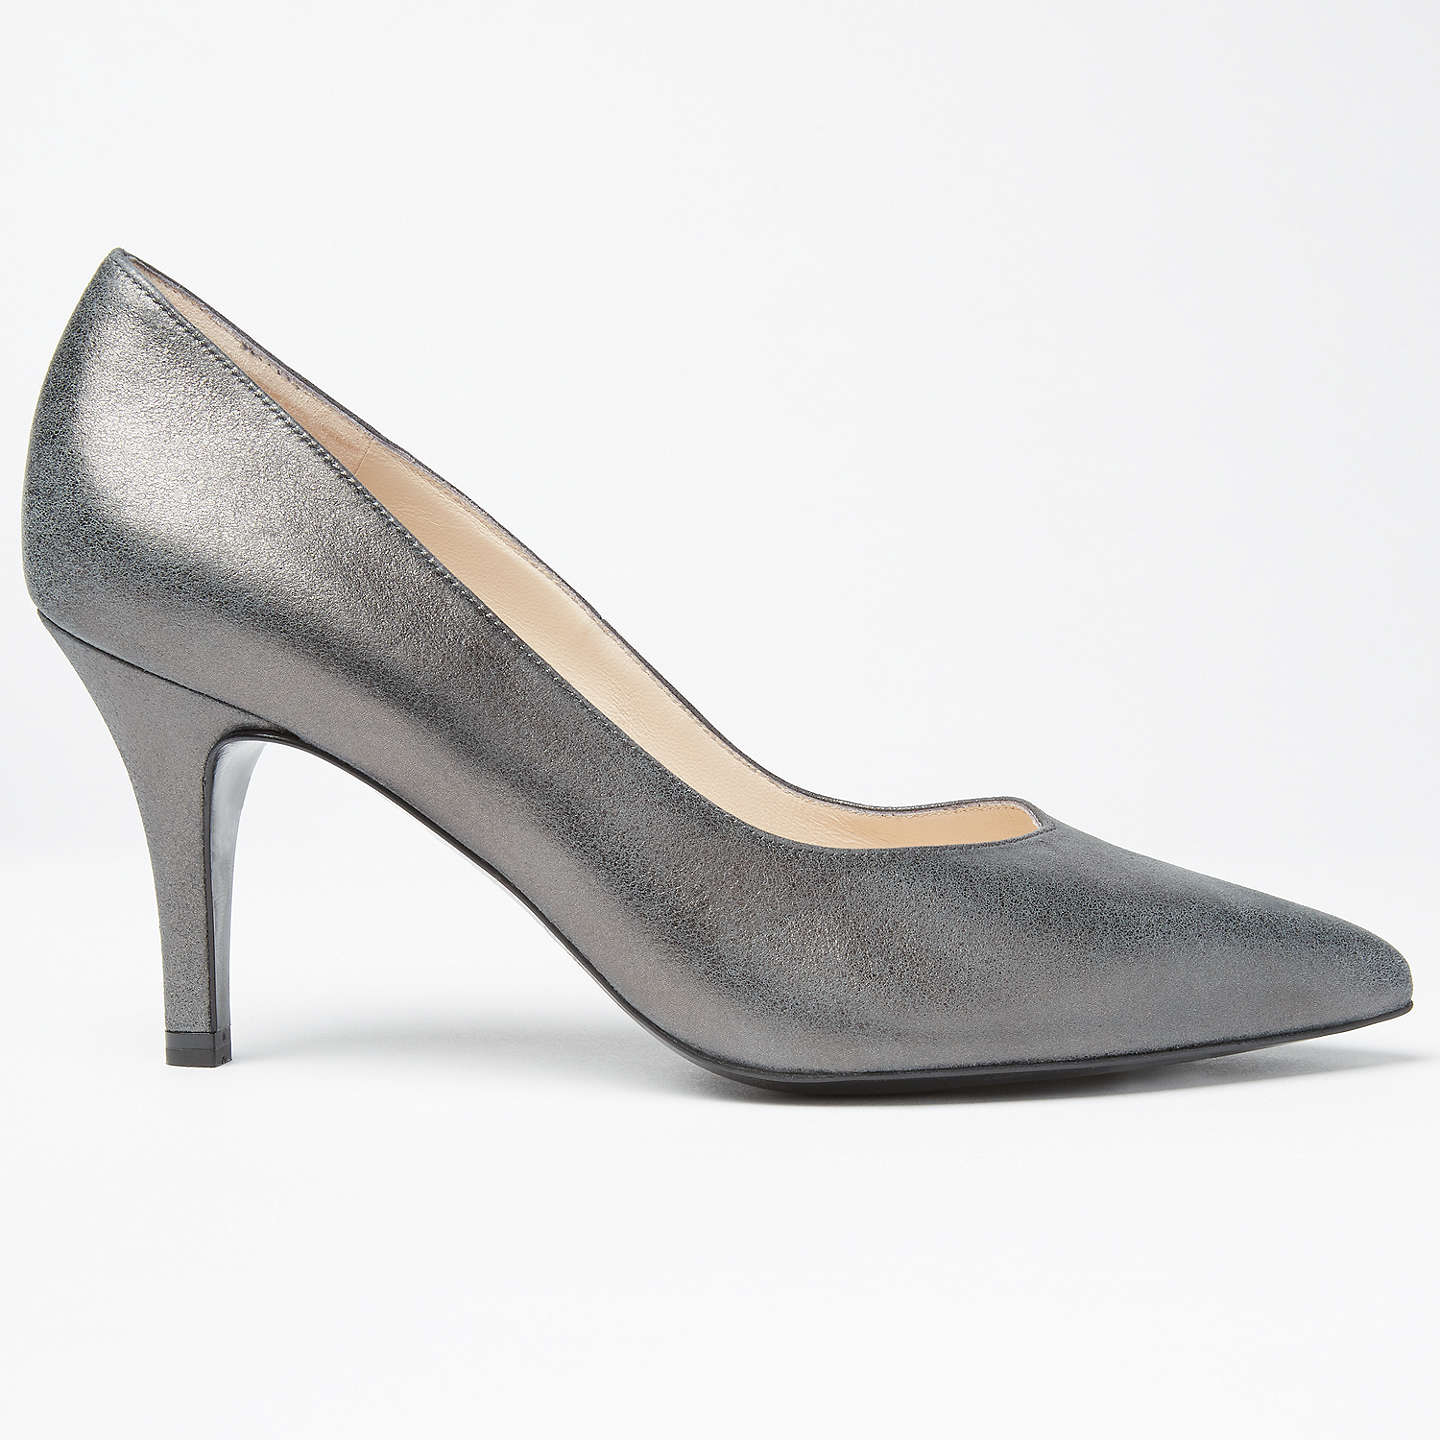 peter kaiser elektra pointed toe stiletto court shoes carbon at